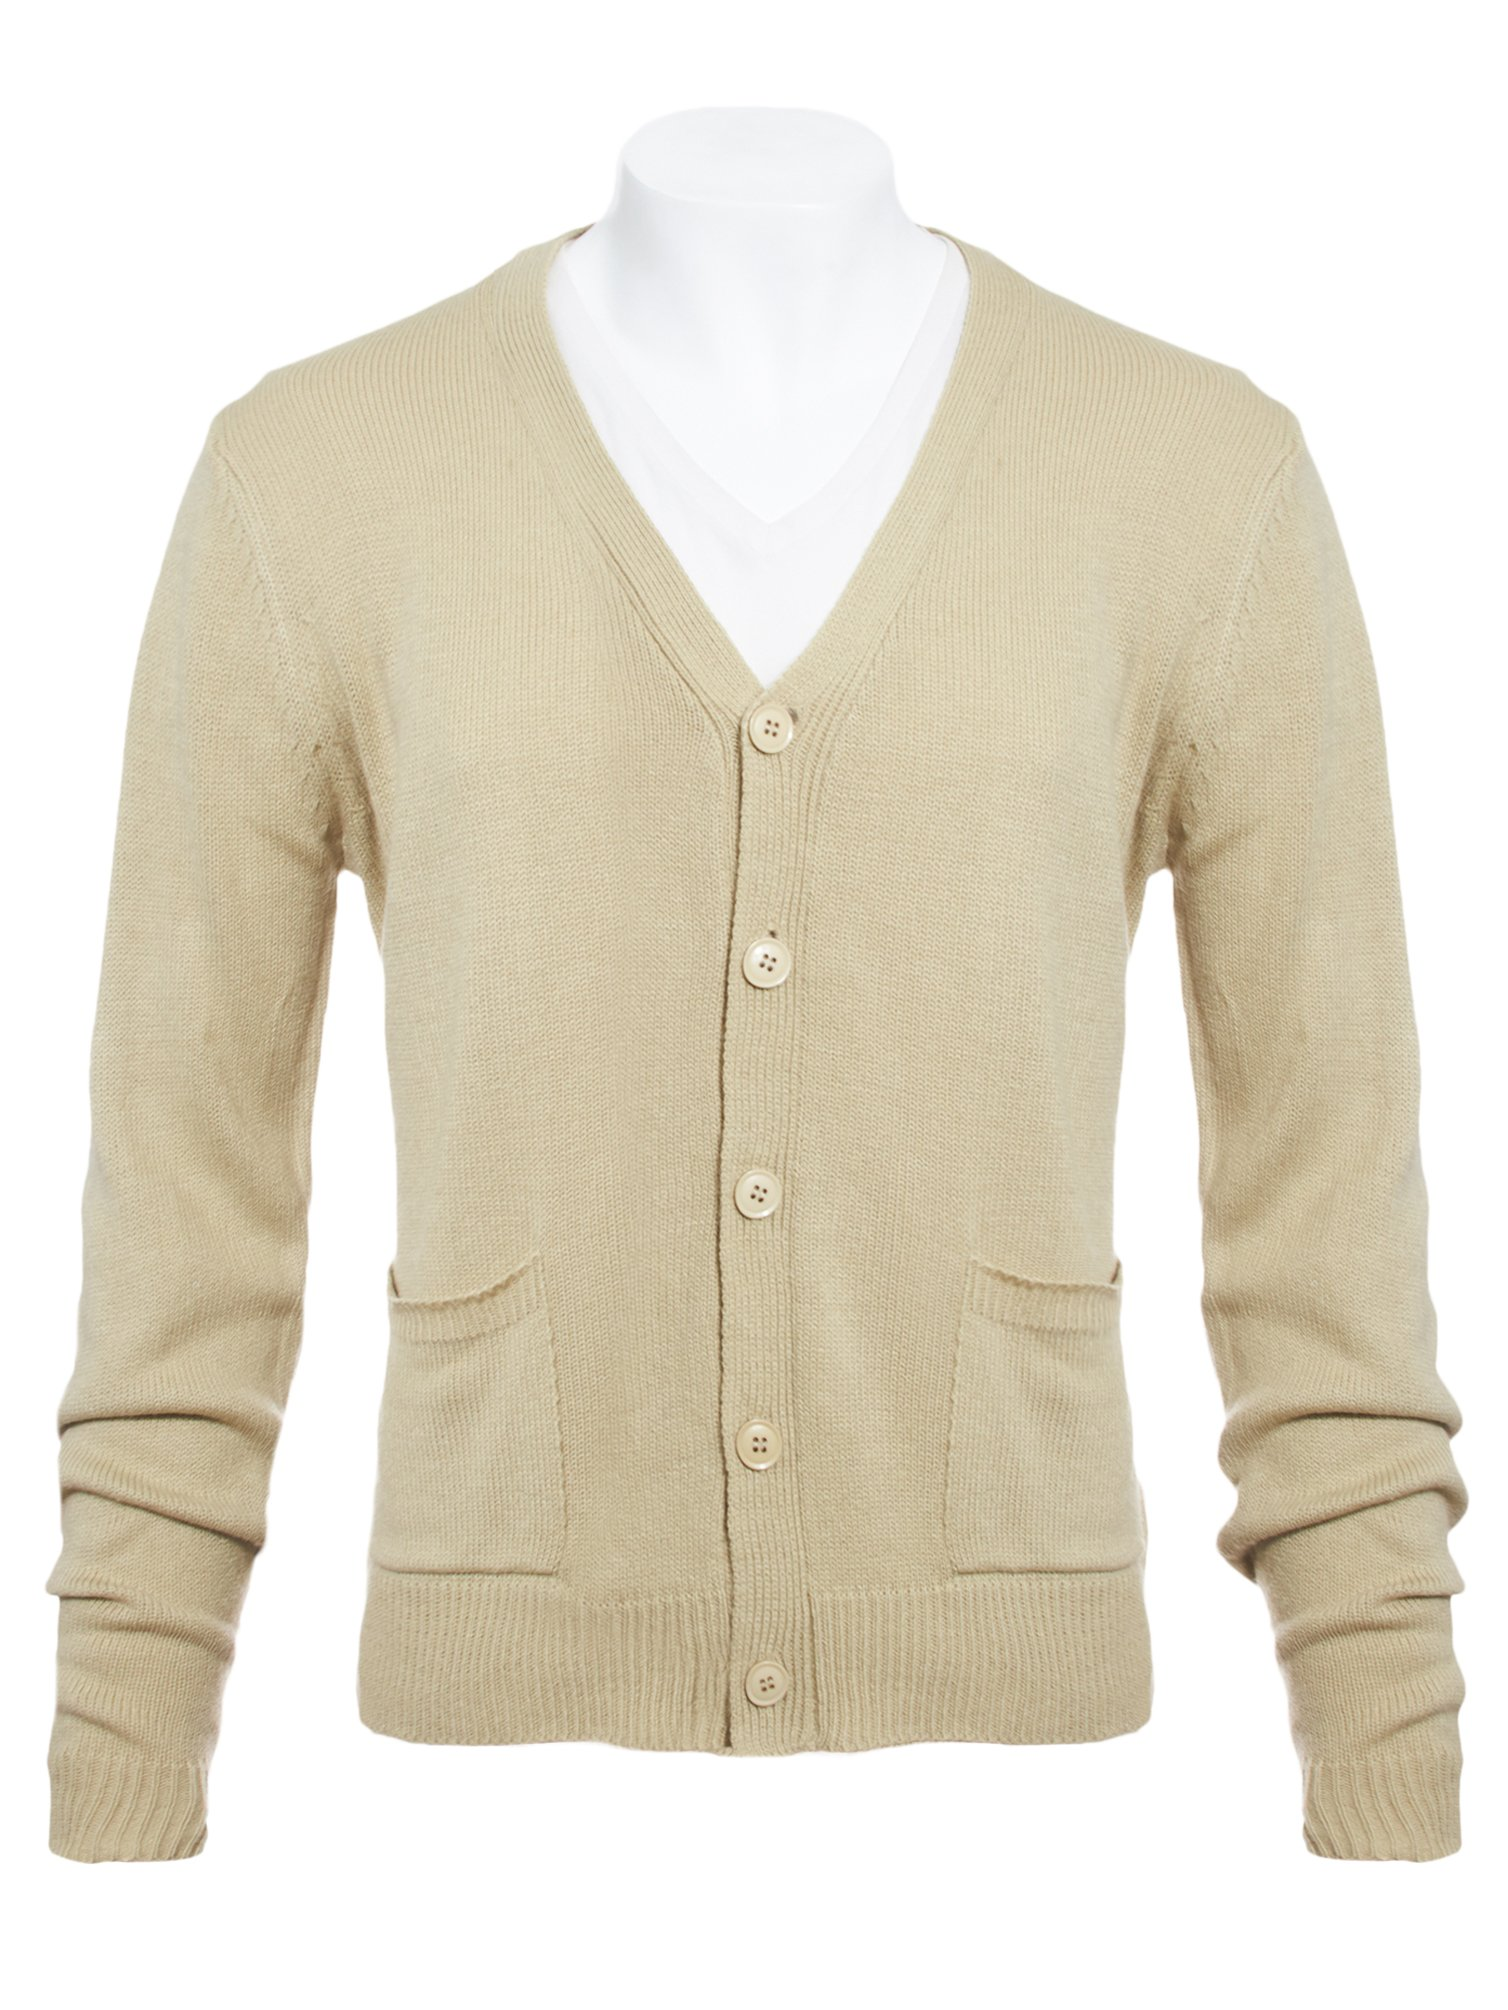 Knit Minded Mens Flat Knit Two Pocket Cardigan Taupe S